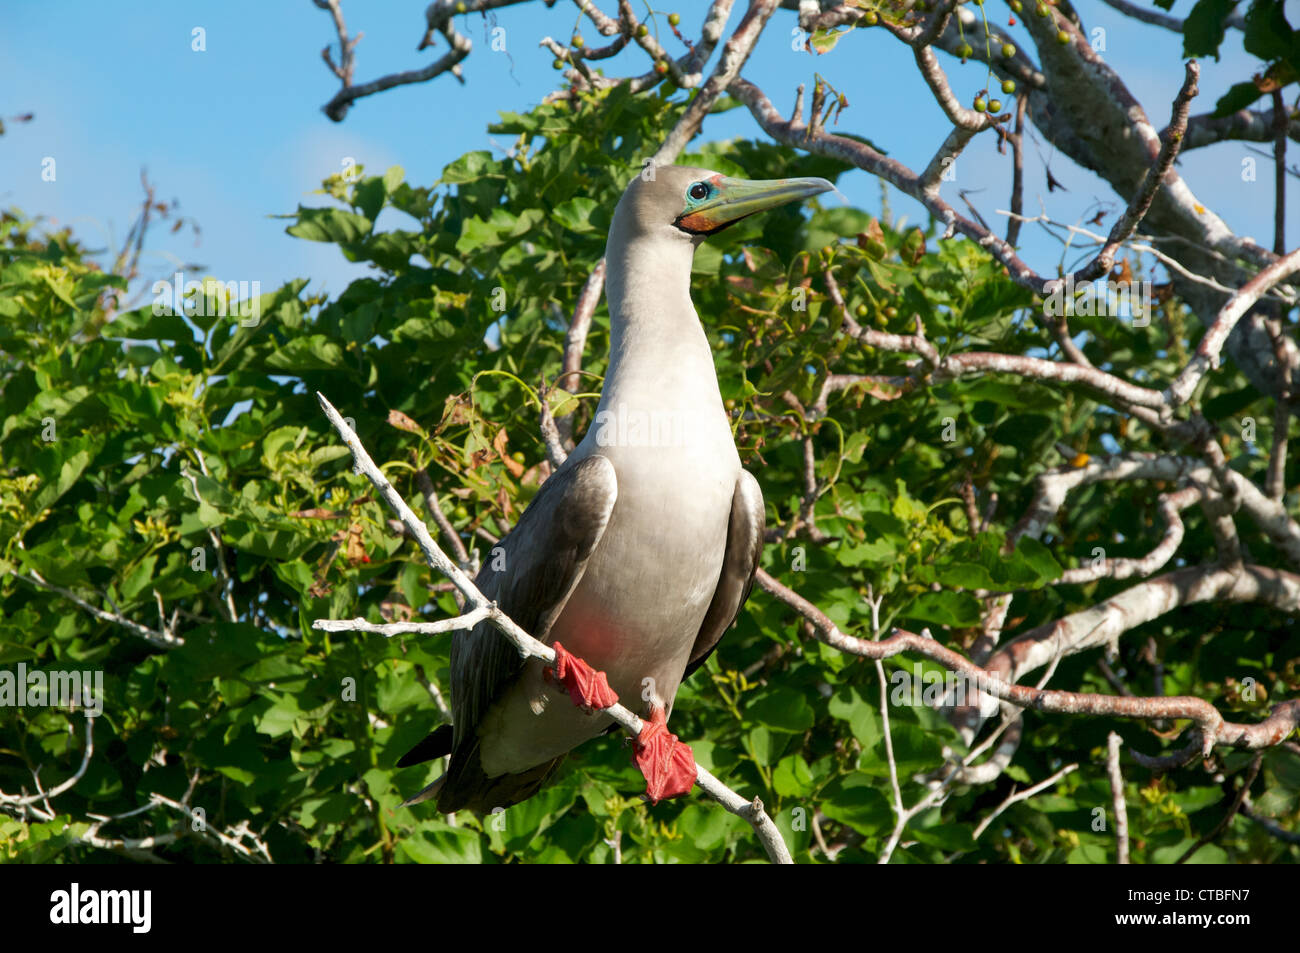 An adult Red-footed Booby (Sula sula) perched on a branch at Prince Philip's Steps, Genovesa Island, Galapagos - Stock Image